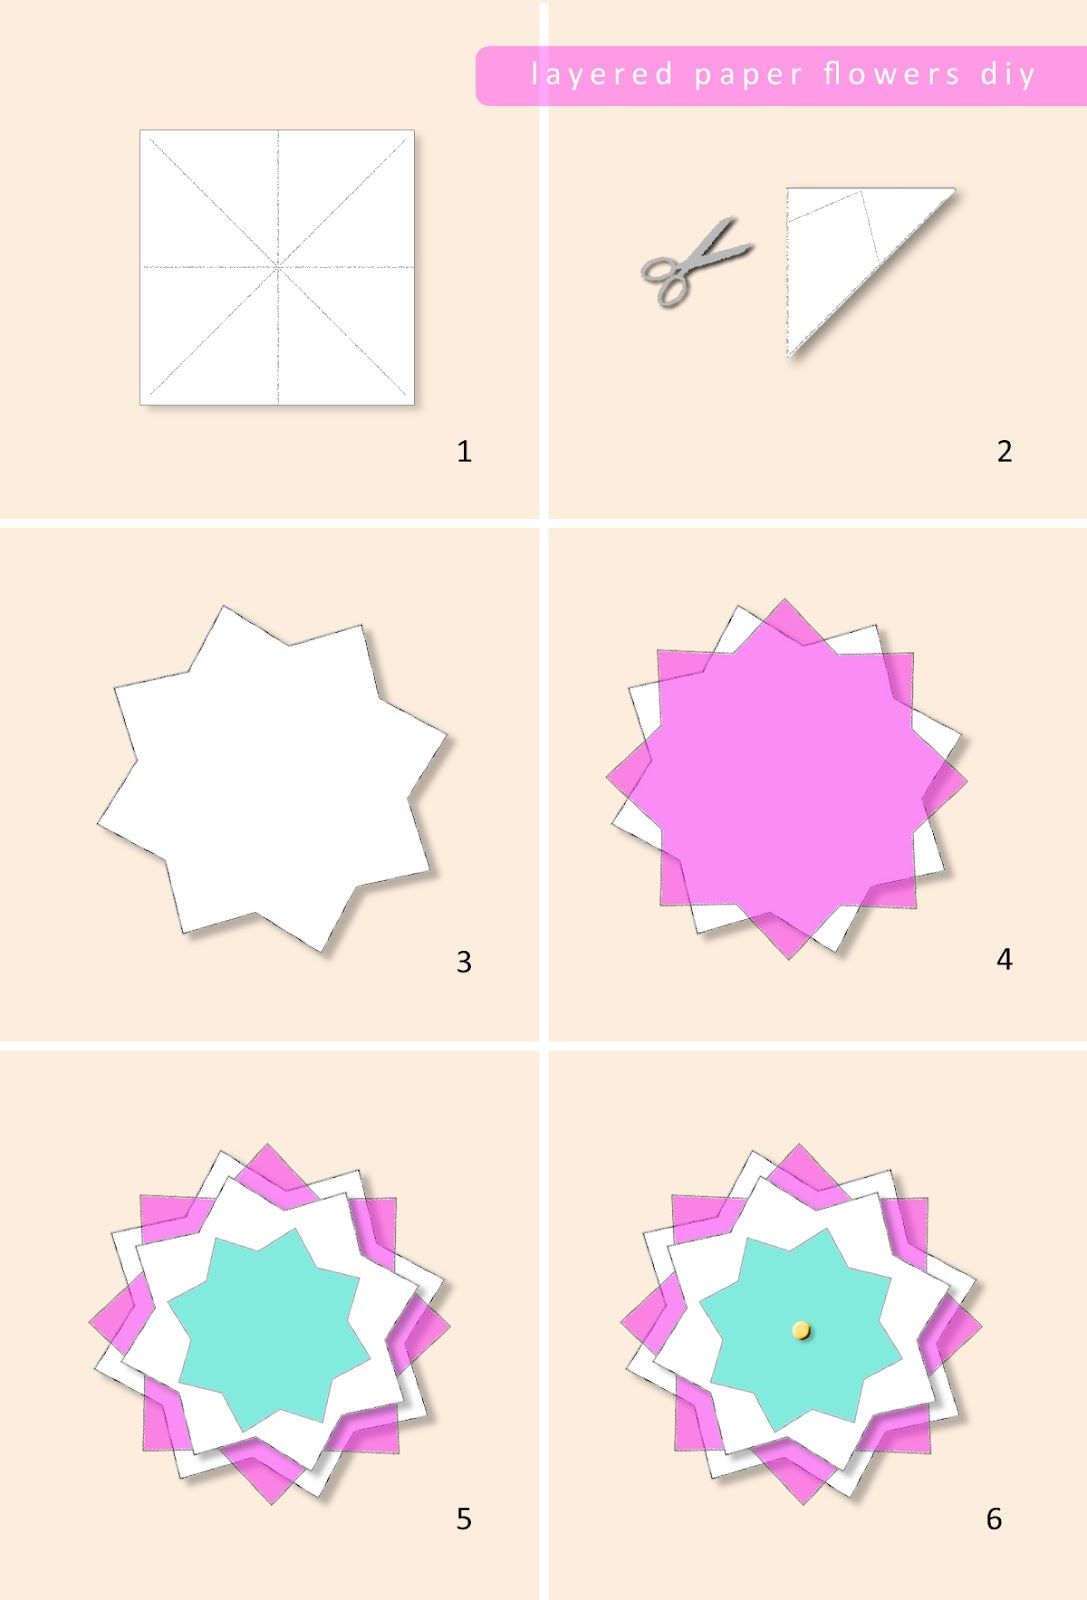 Forty weeks craftsdiy layered paper flowers flowers pinterest forty weeks craftsdiy layered paper flowers mightylinksfo